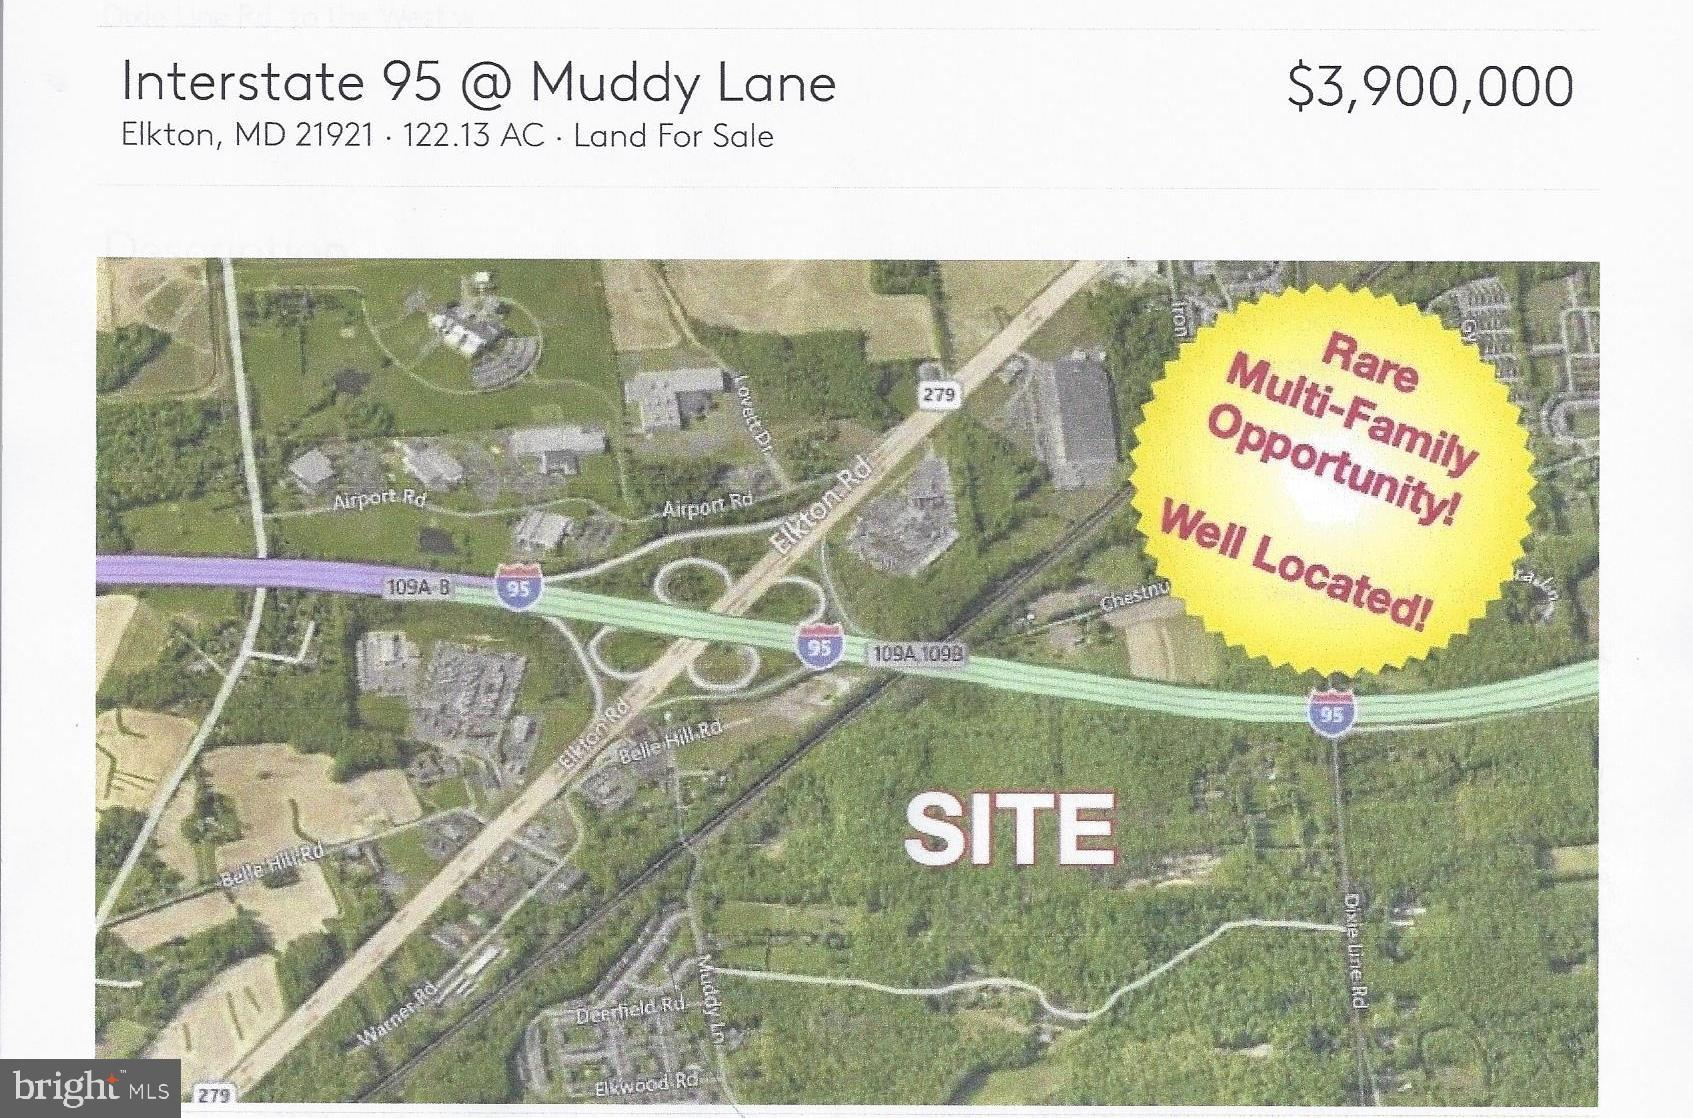 LOT #1, 110 ACRES MUDDY Ln, Elkton, MD, 21921